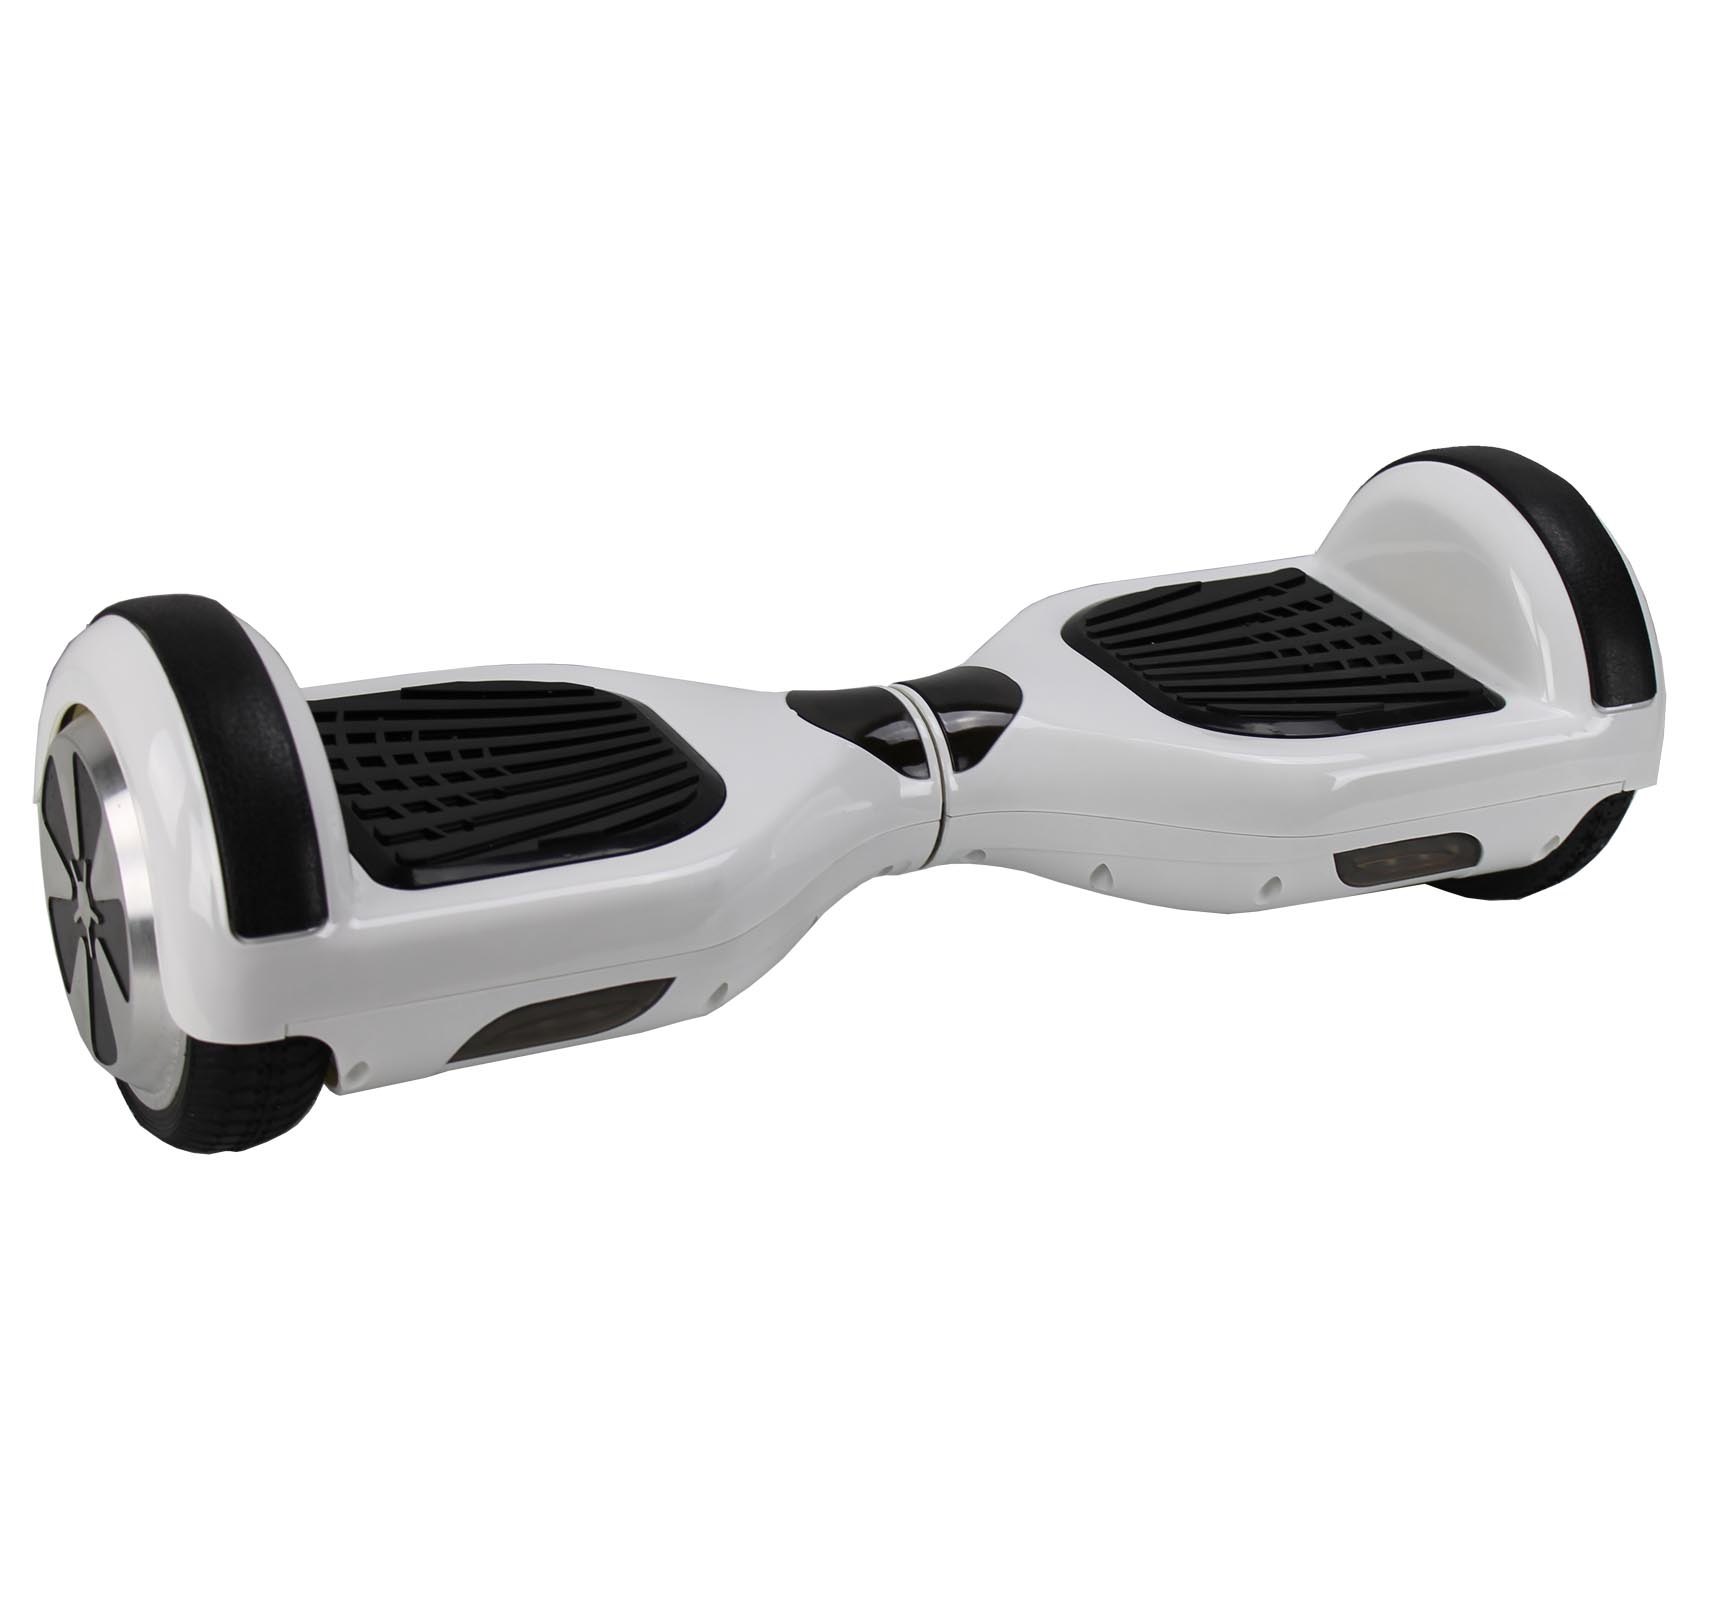 Smart Self-Balancing Two Wheel Mini Hover Board Scooter